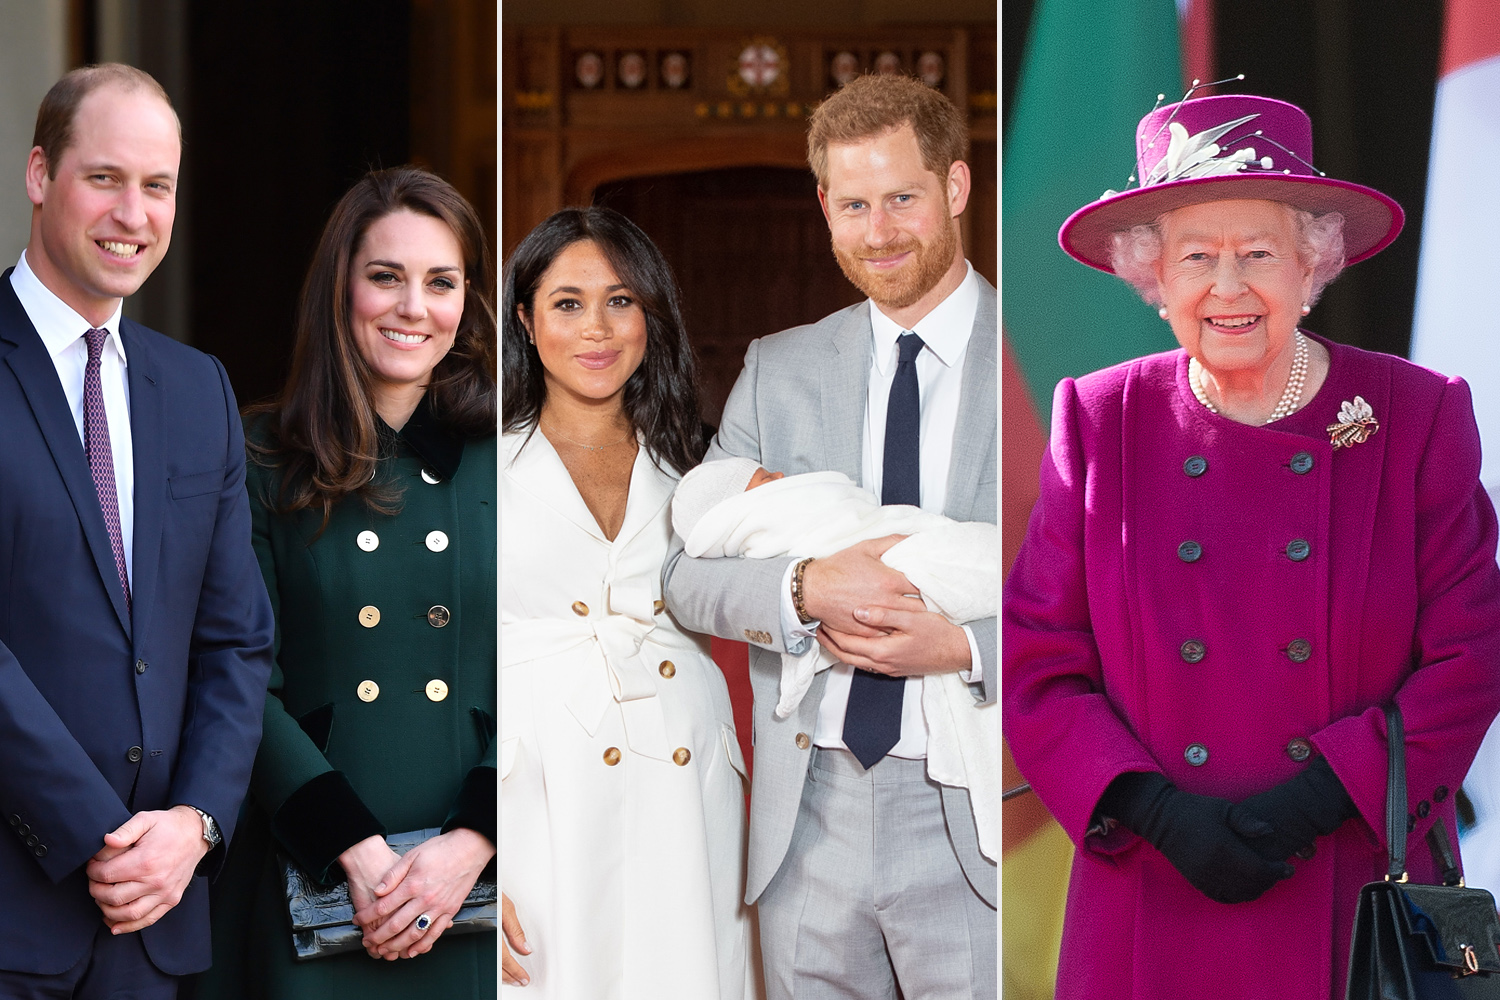 Prince William, Duke of Cambridge and Catherine, Duchess of Cambridge; Prince Harry, Duke of Sussex and Meghan, Duchess of Sussex; Queen Elizabeth II